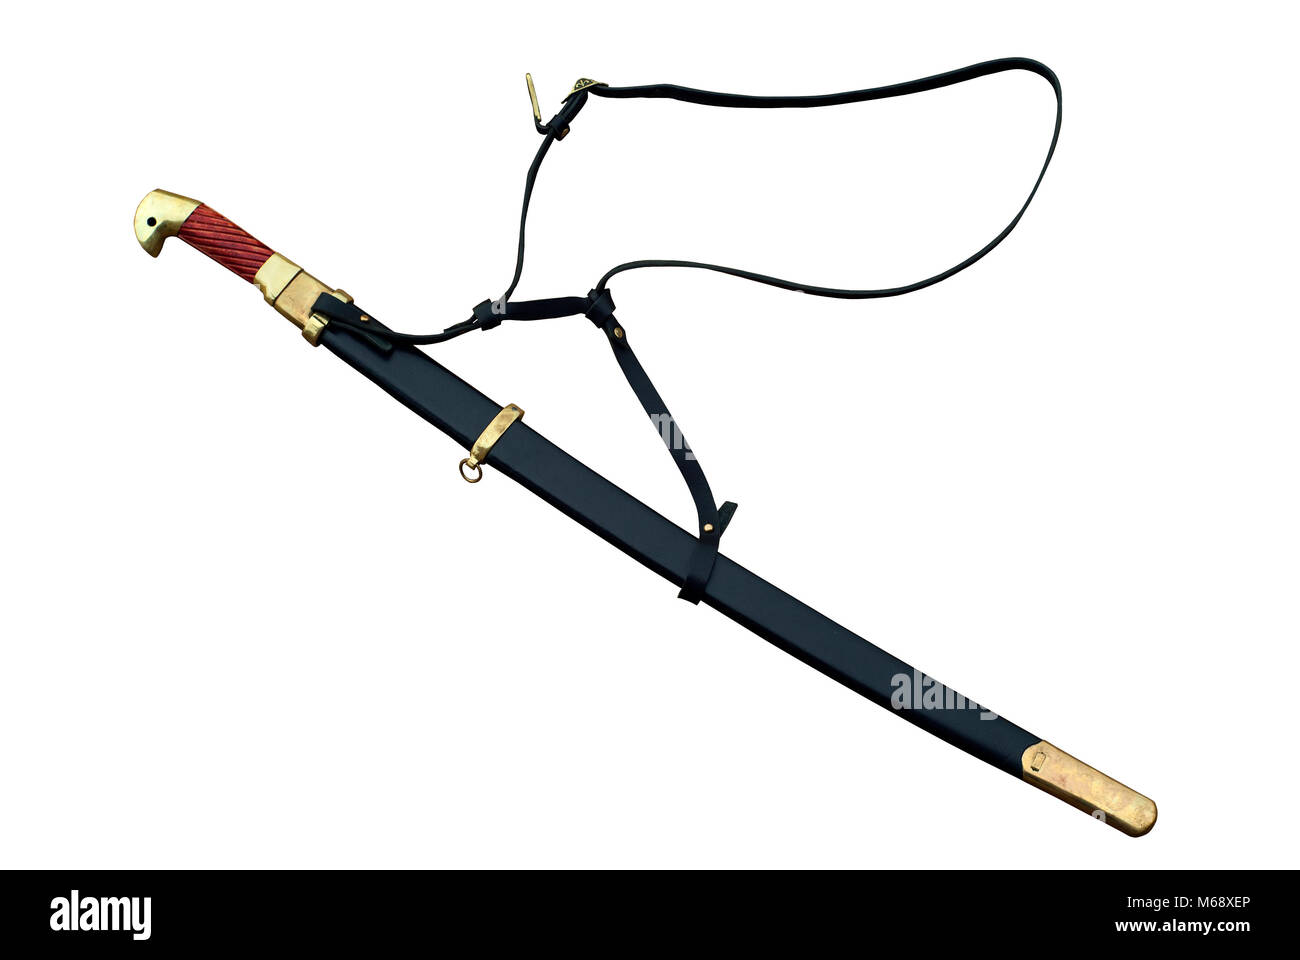 cossack shashka in scabbard, isolated on white backround - Stock Image